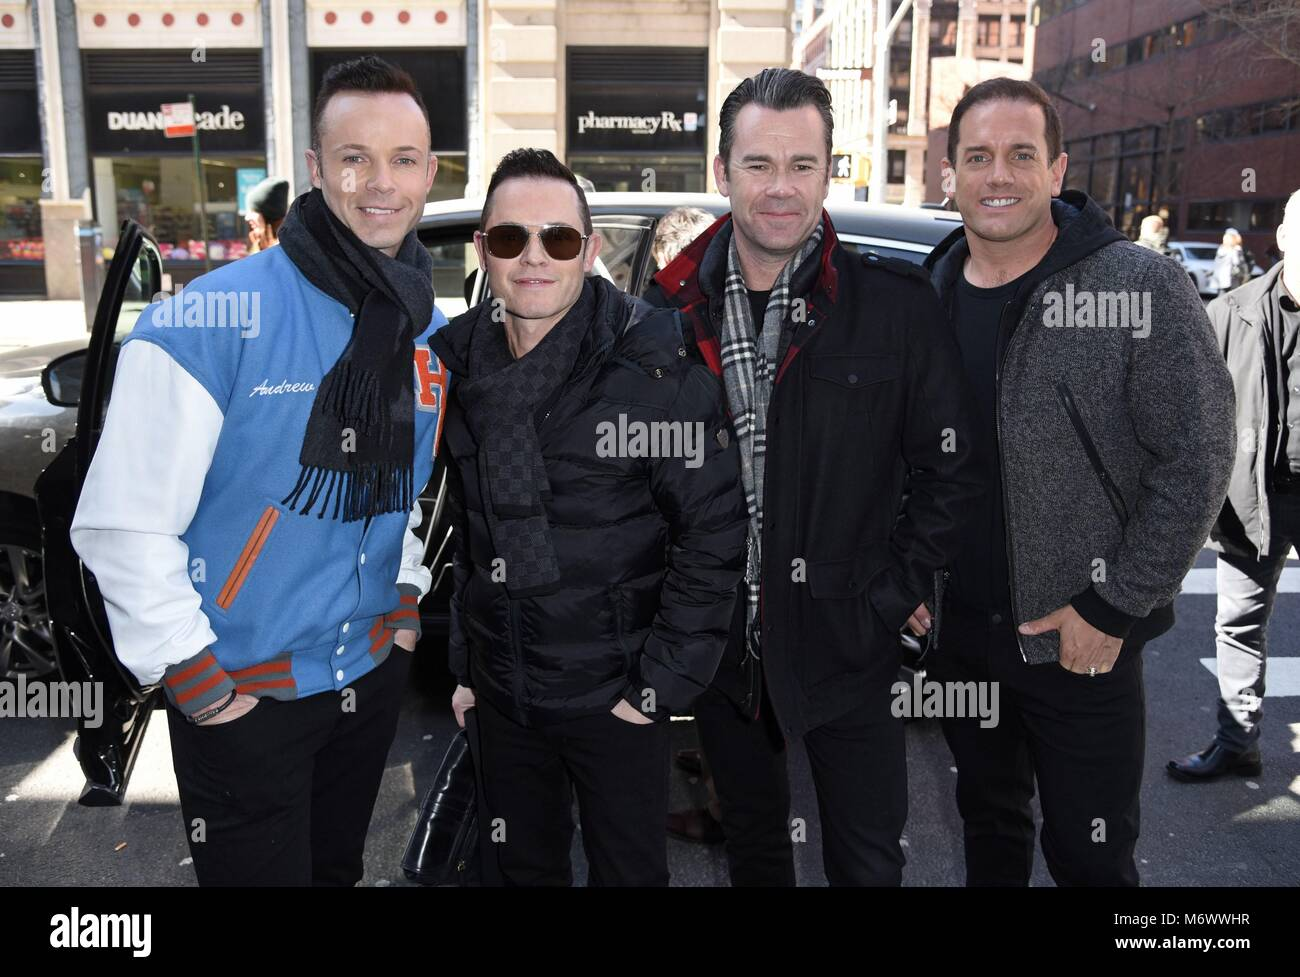 New York, NY, USA. 6th Mar, 2018. Human Nature, Andrew Tierney, Michael Tierney, Phil Burton, Toby Allen, seen at - Stock Image